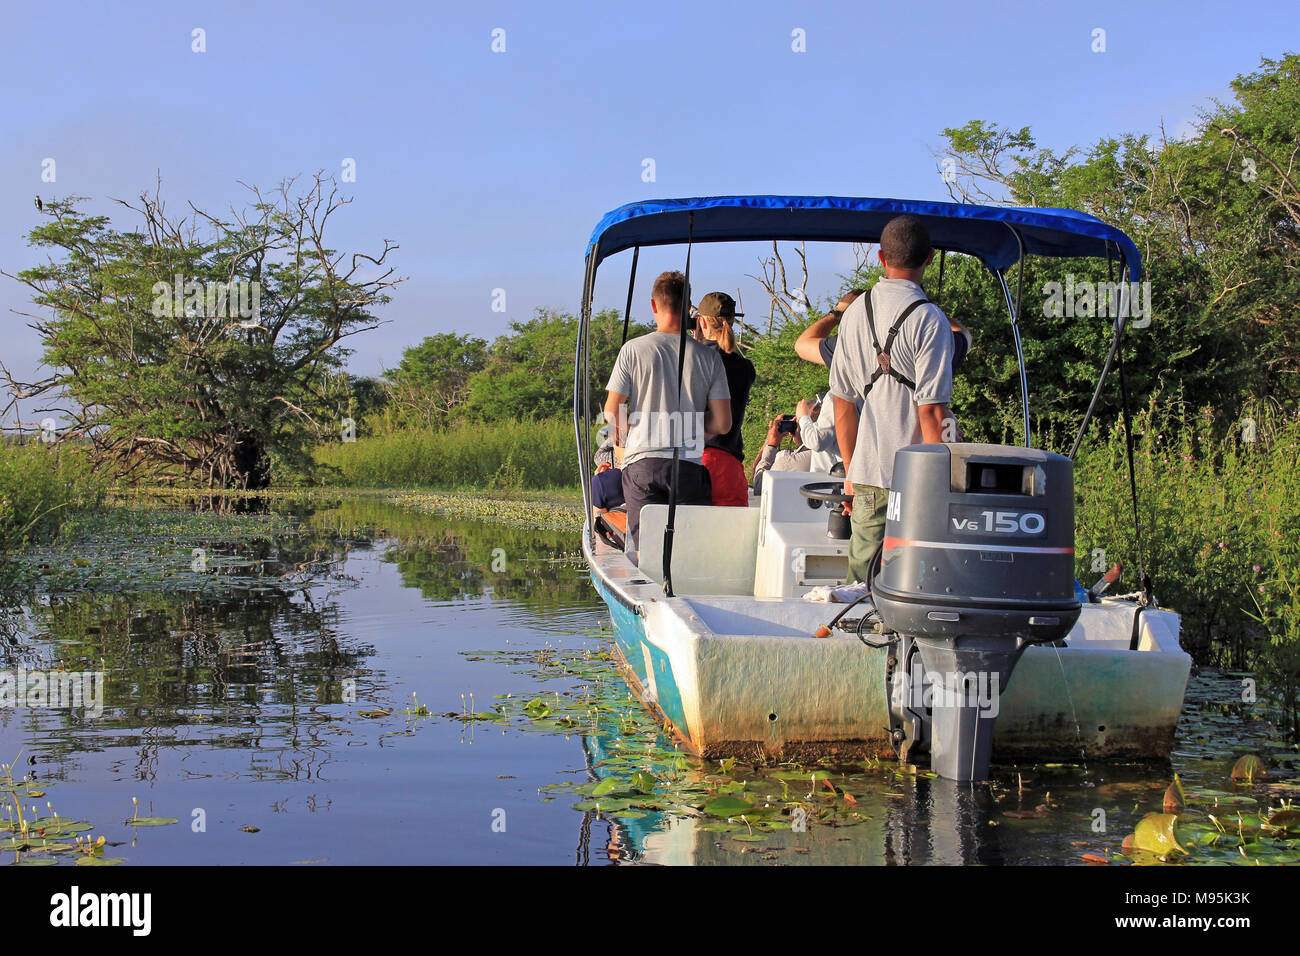 Tourists Enjoying An Early Morning Birdwatching Trip (spotting an Osprey) On The Lagoon At Crooked Tree Wildlife Sanctuary, Belize - Stock Image